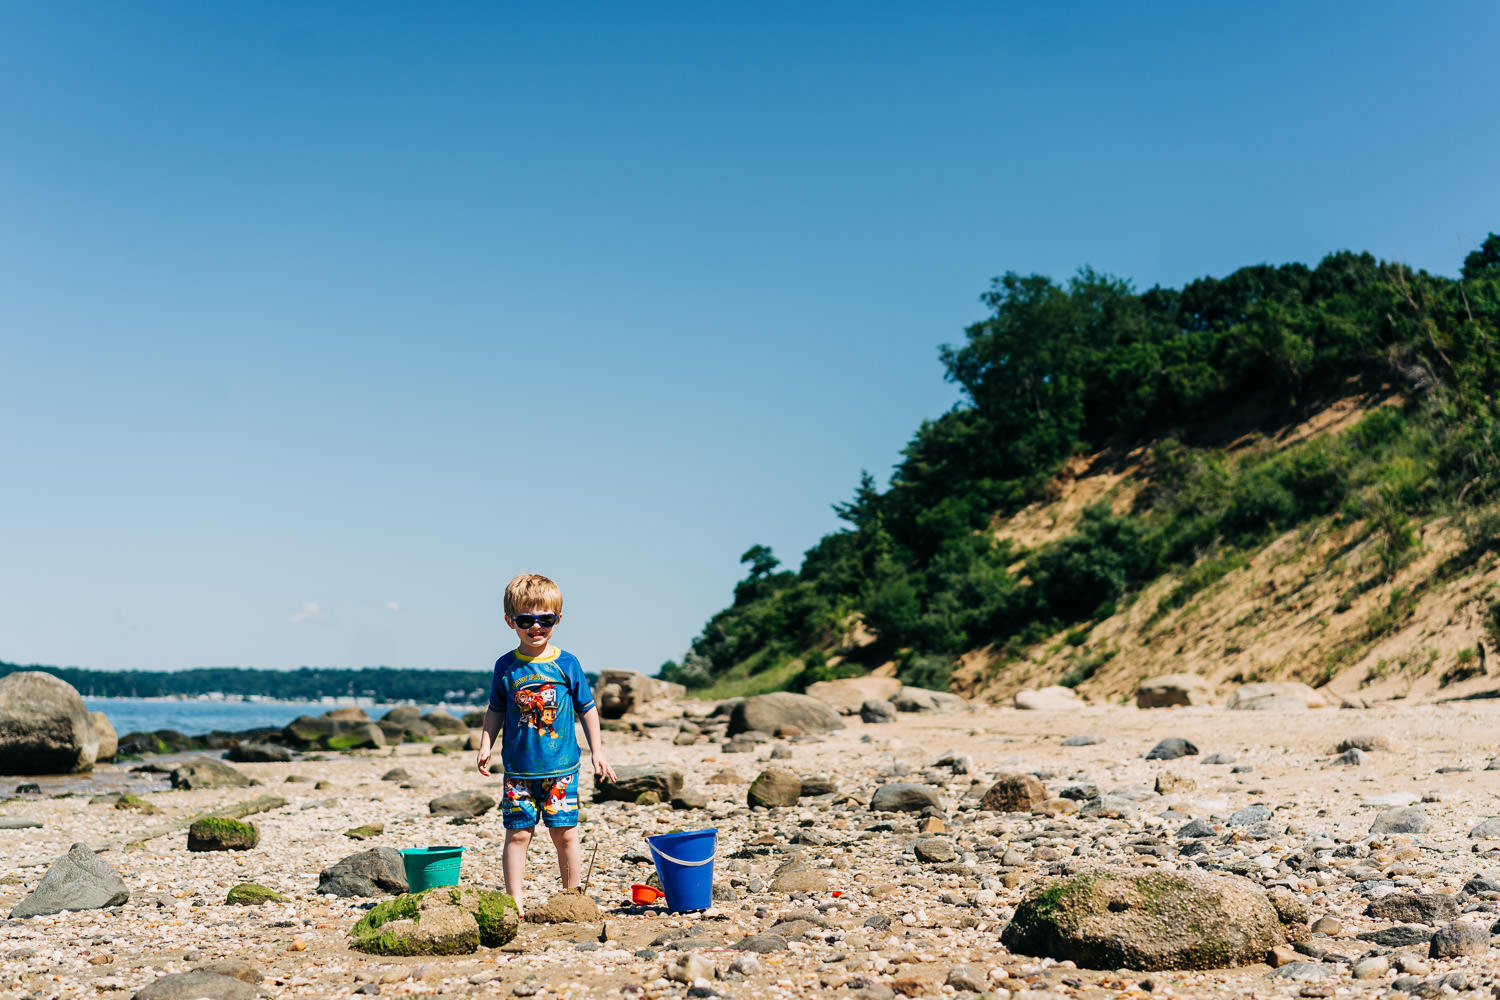 A little boy plays on the beach at Sands Point.